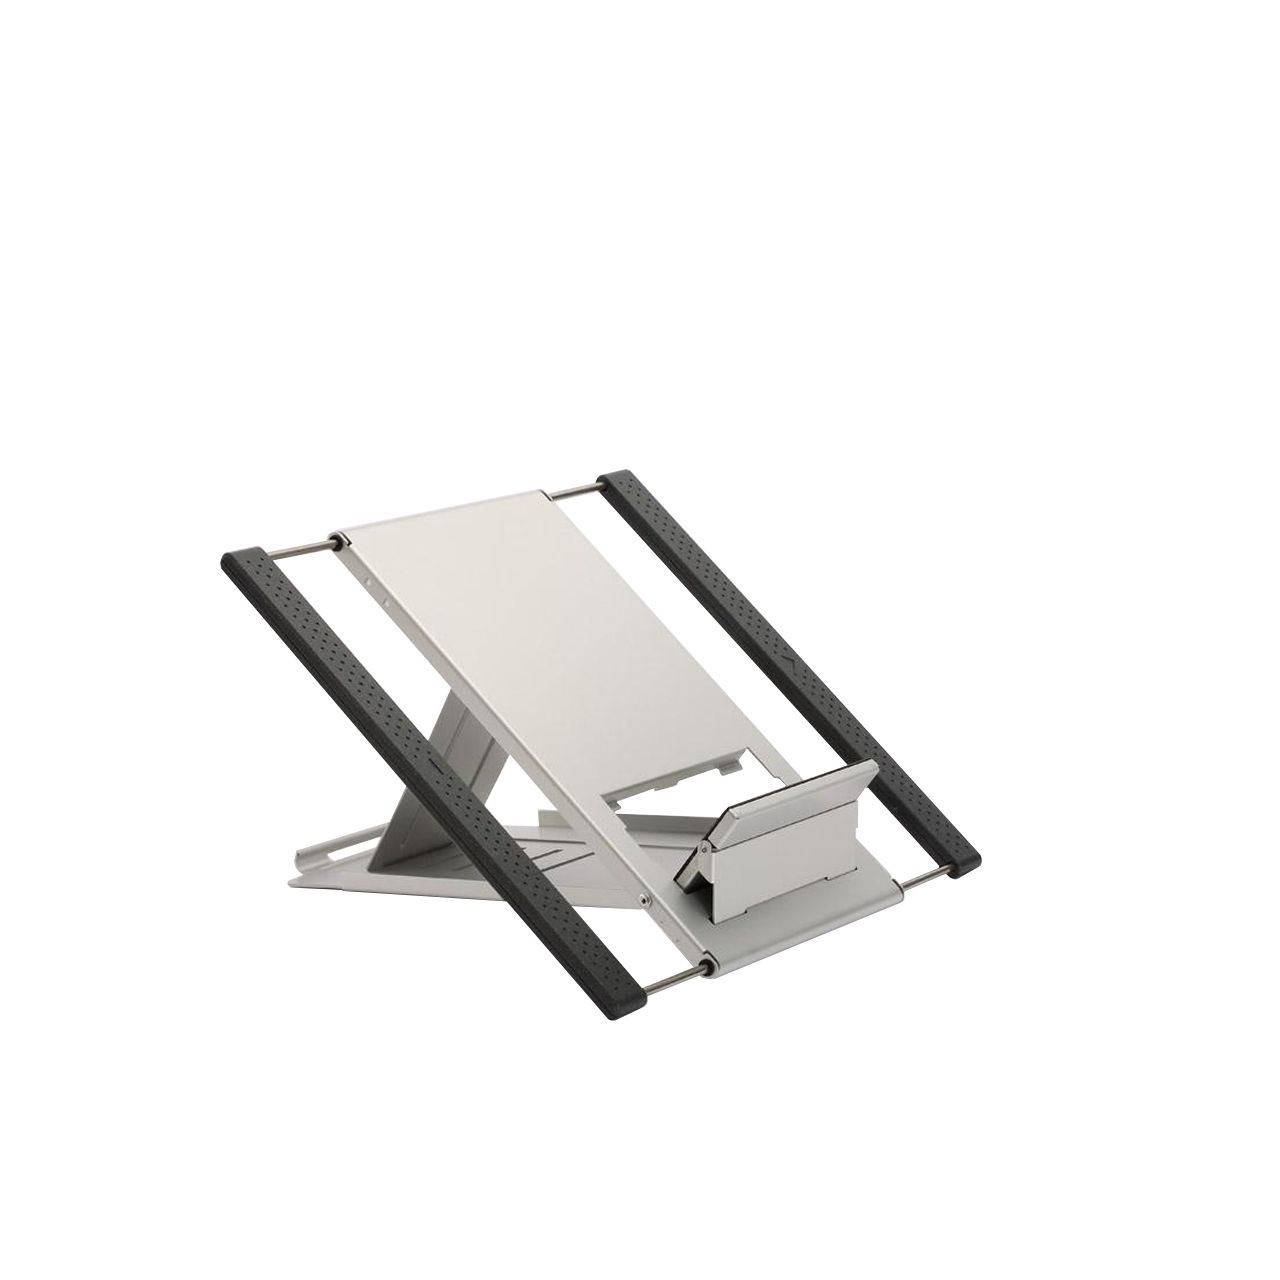 ergostar laptopstand flexible laptophouder ERKASC01 Schuinvoor